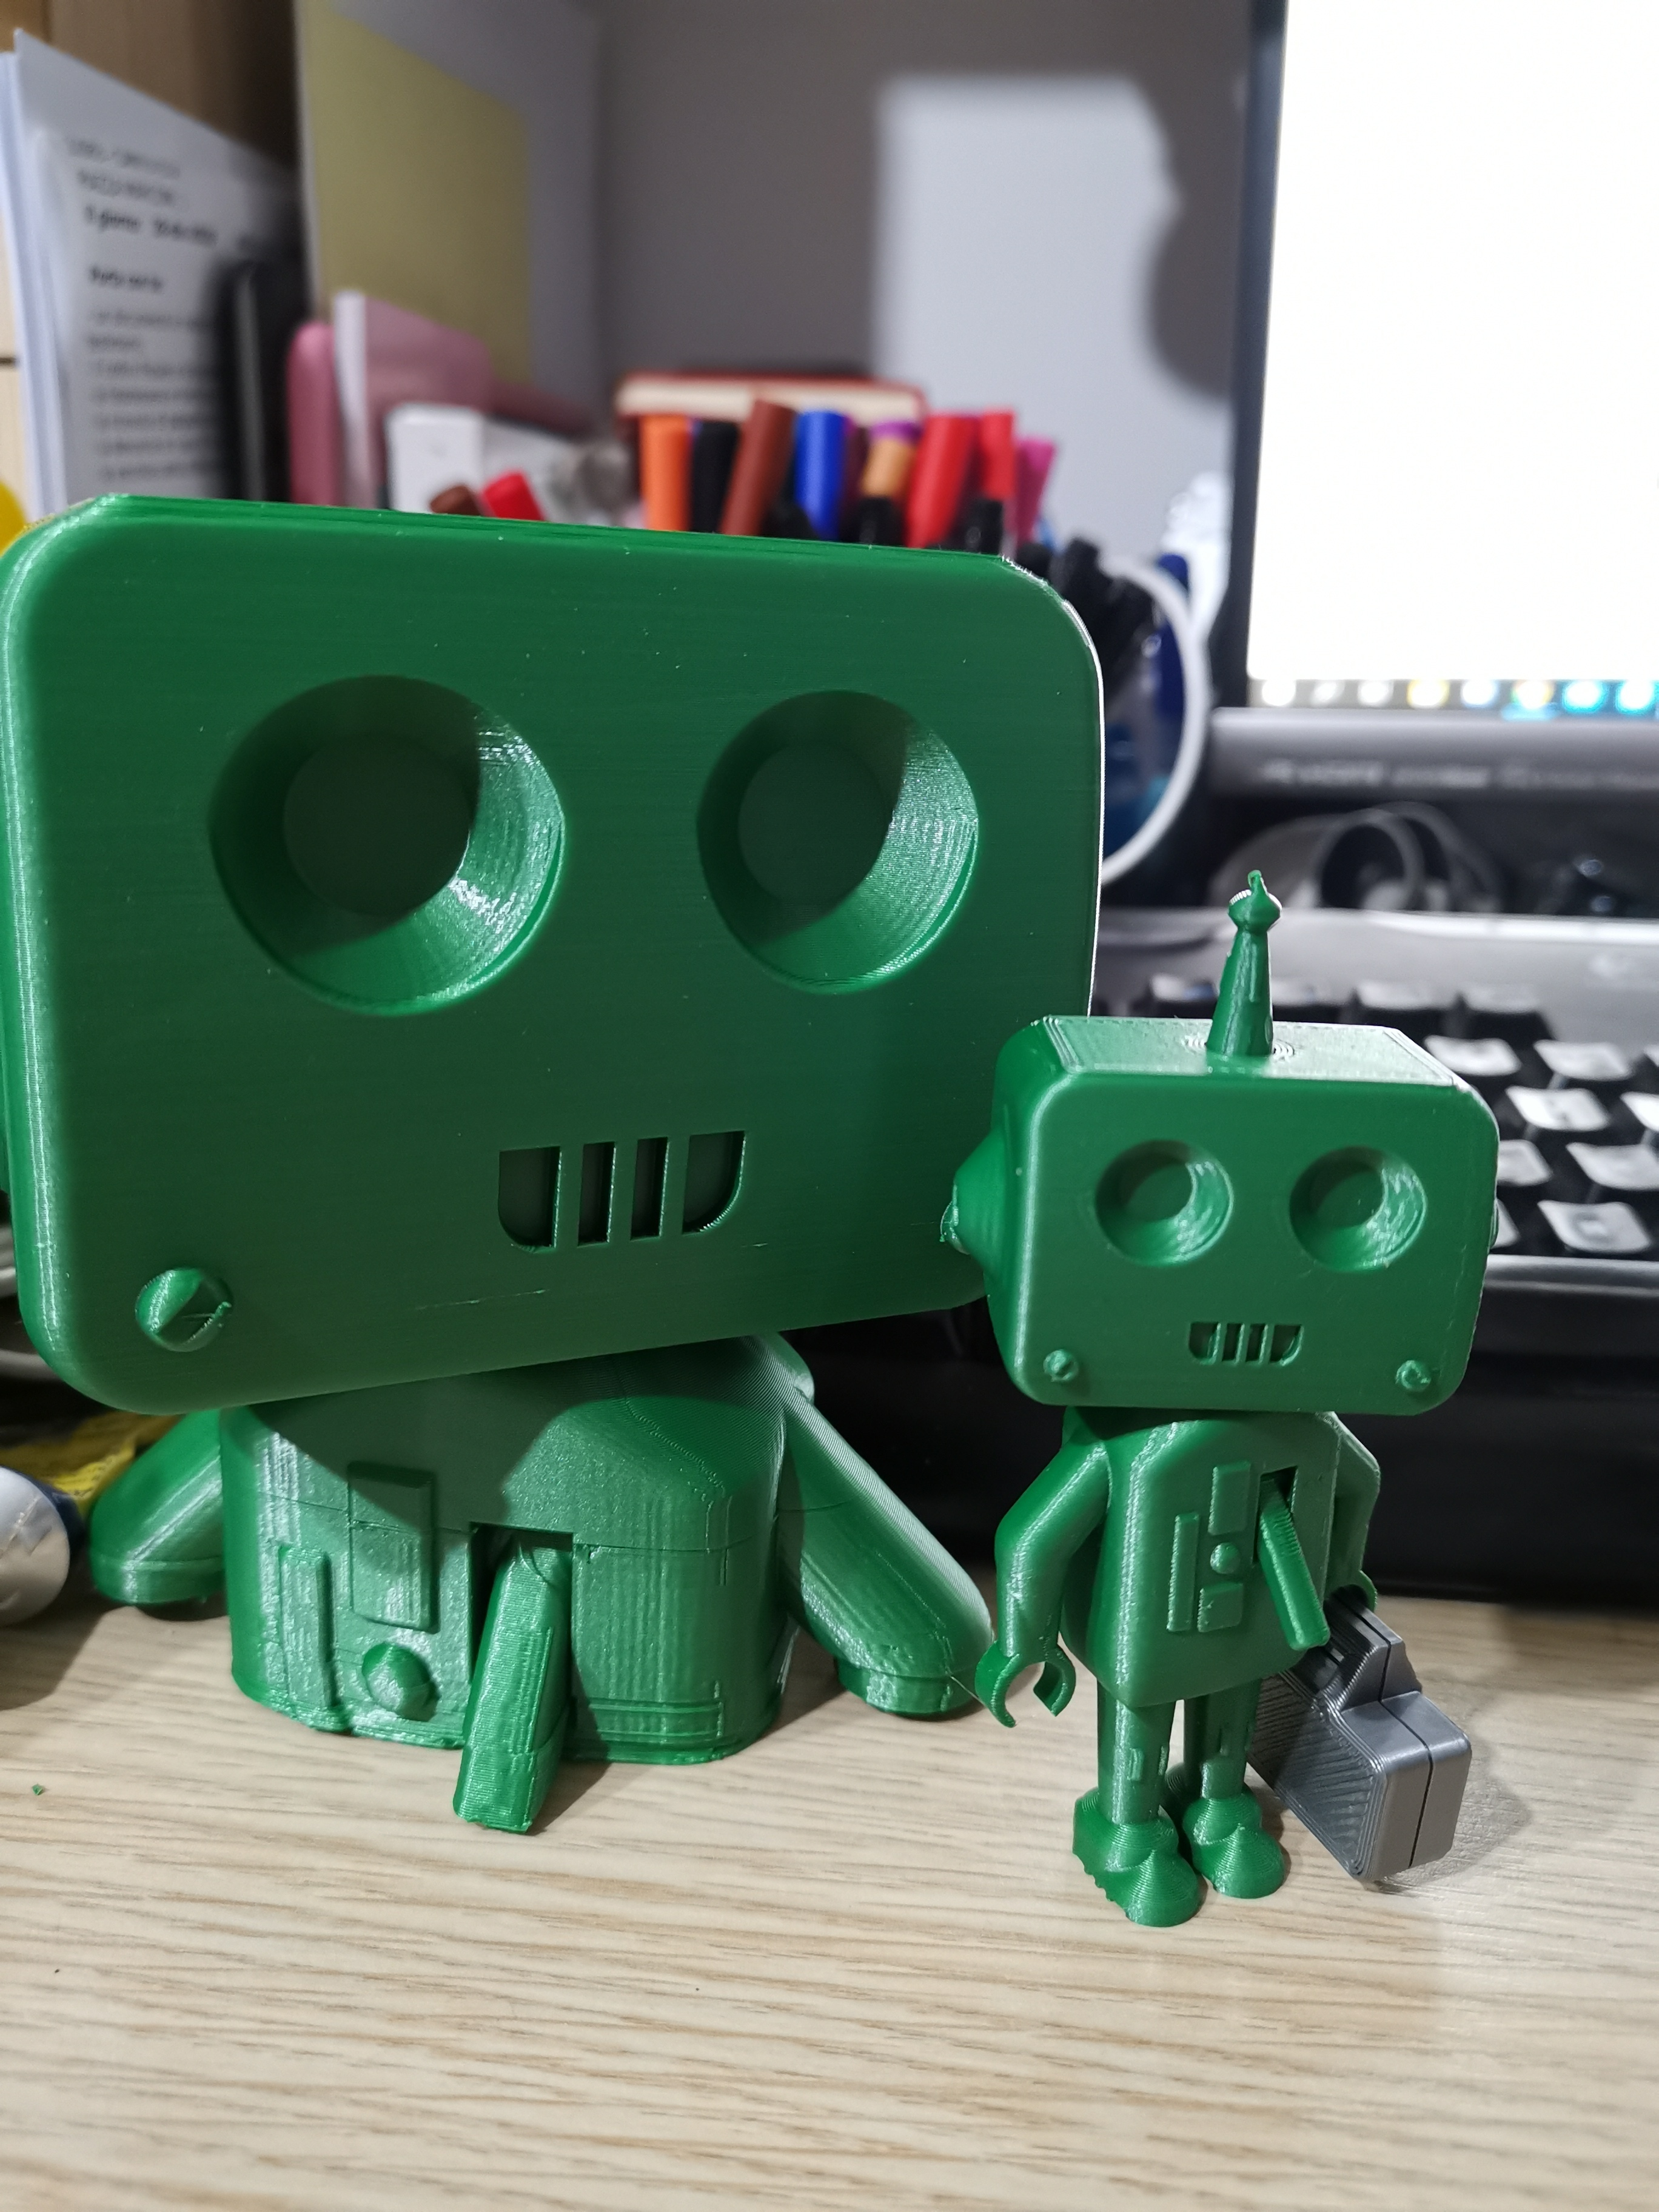 Download free STL file Cyber_Rob the robot (3D printer test) • 3D printable object, Cyber_3dprinter